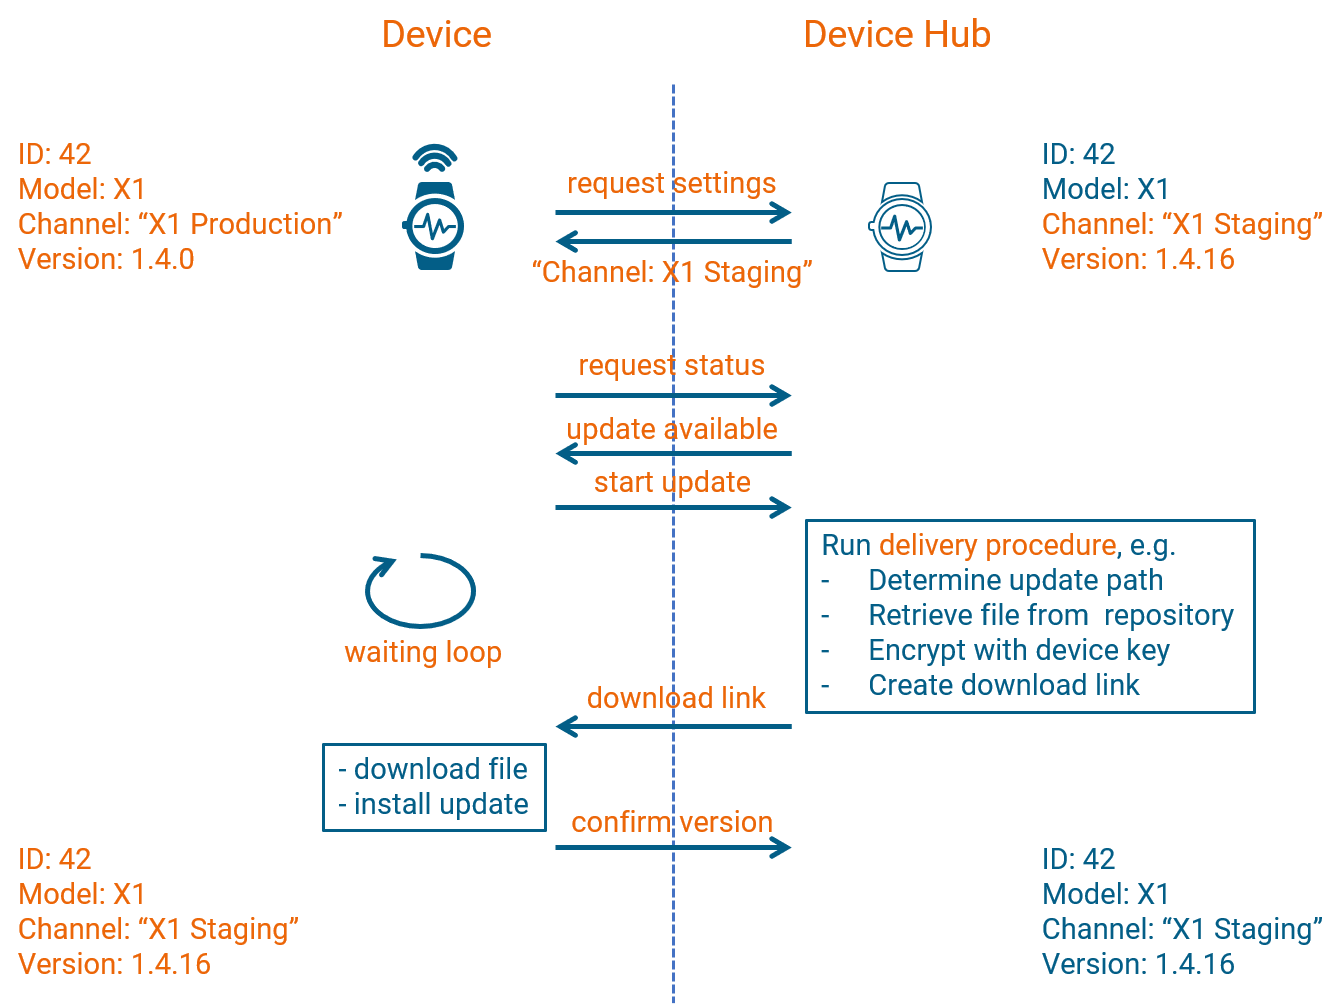 flow diagram showing how devices communicate with the Devie Hub during the firmware update process